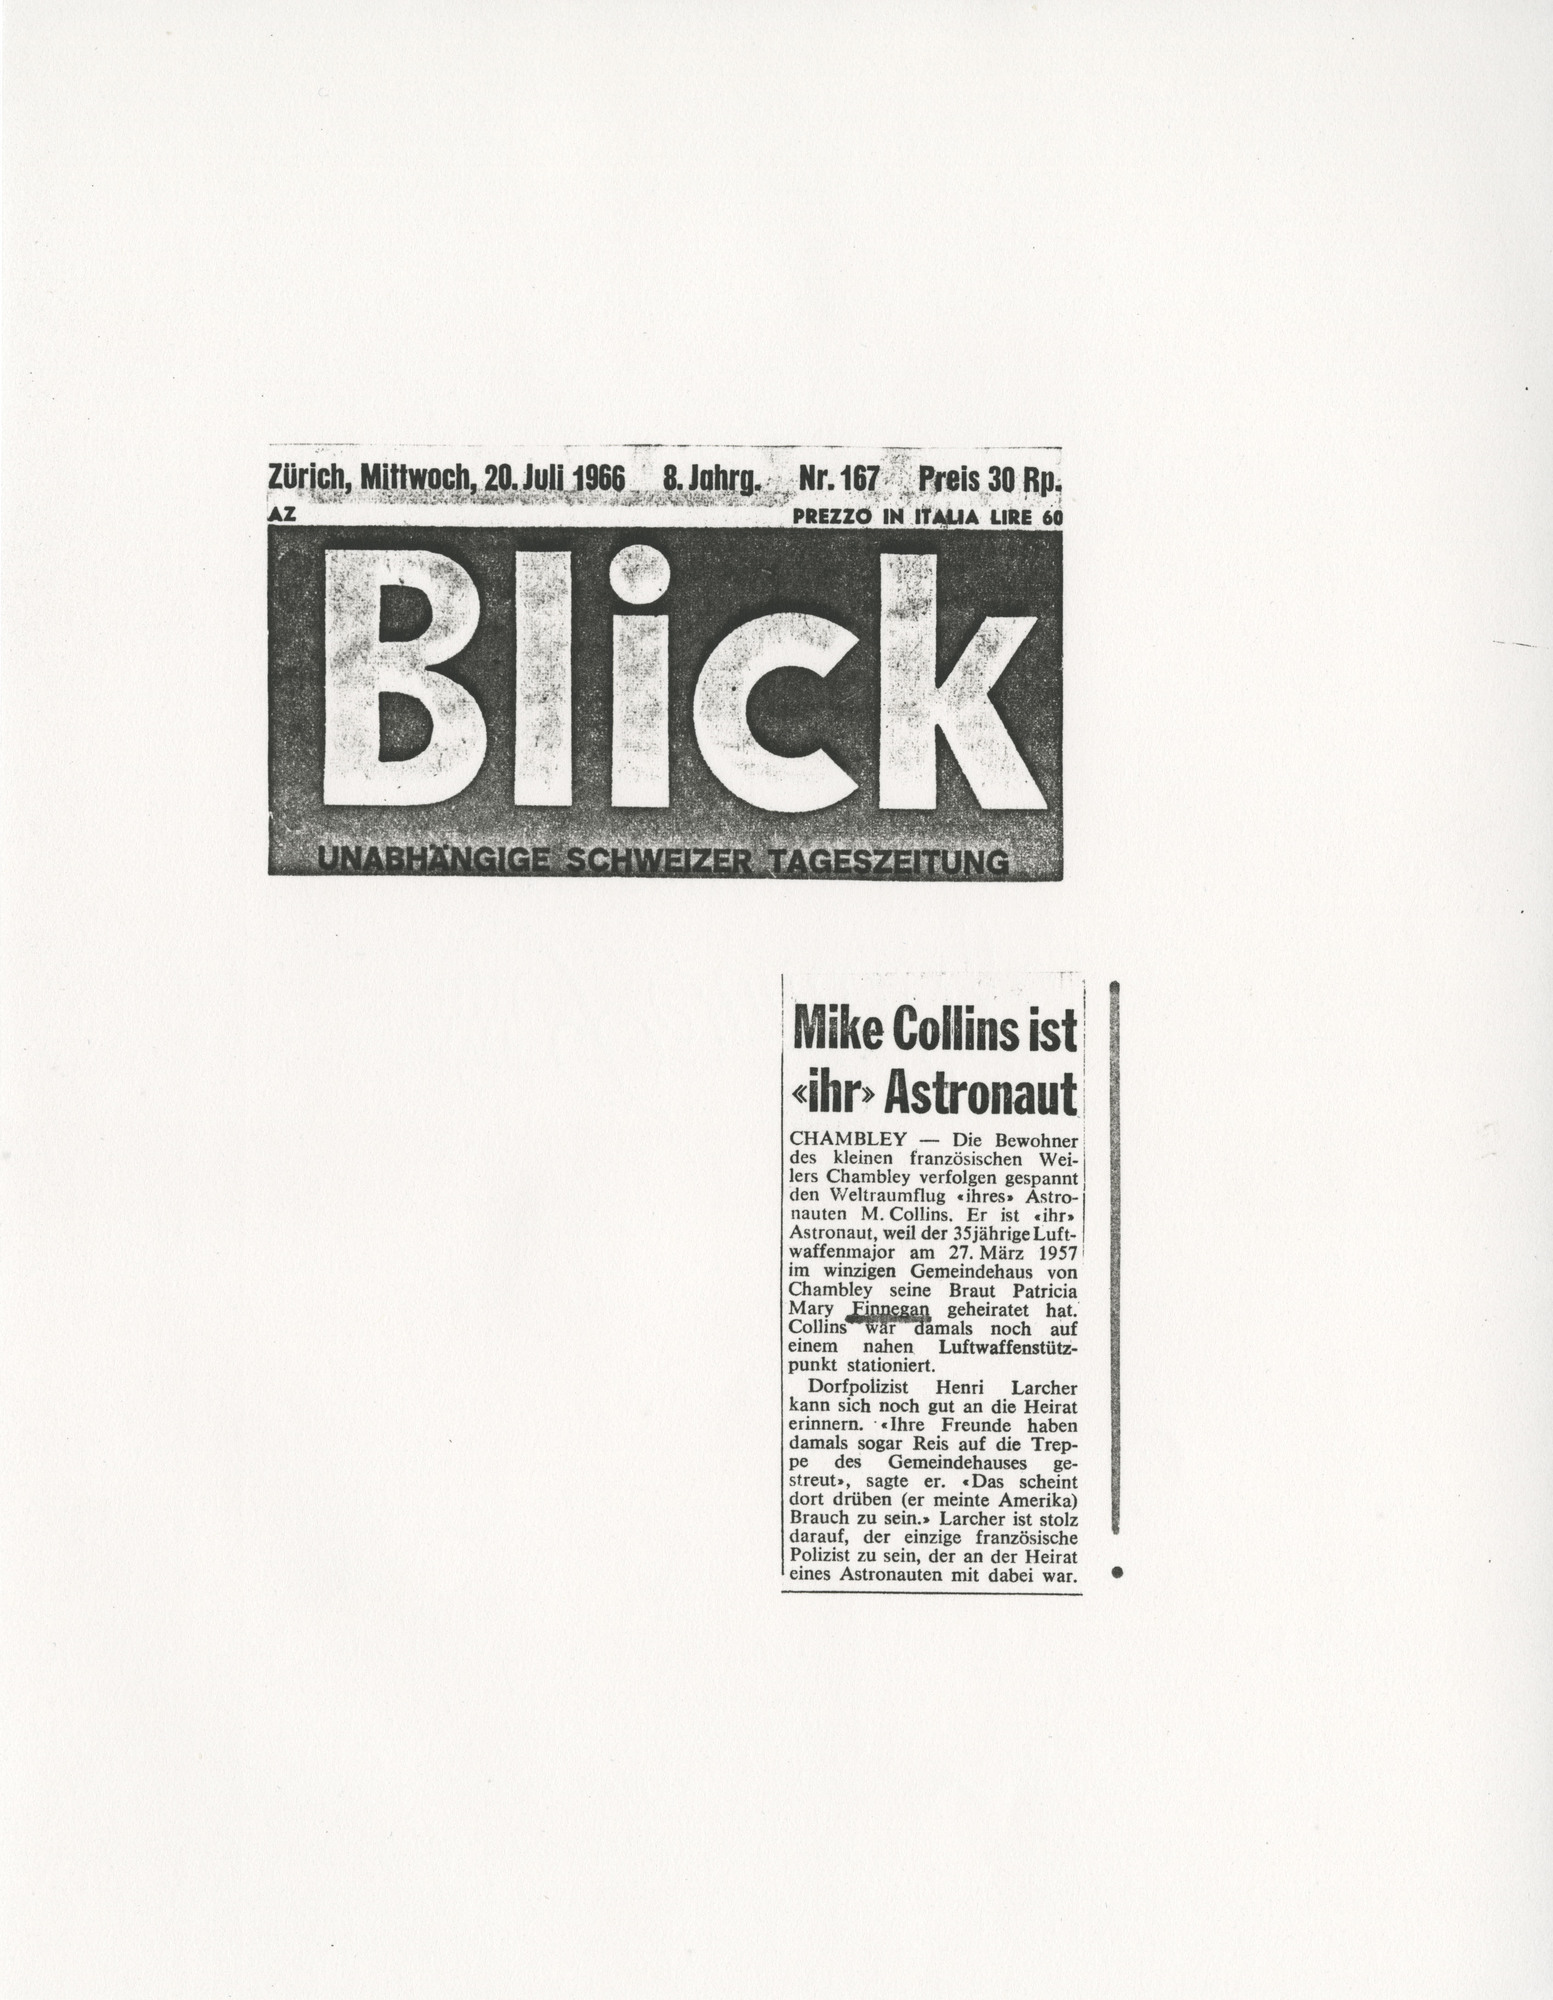 http://spec.lib.vt.edu/pickup/Omeka_upload/Ms1989-029_B07_F3_Clippings_1966_0720_03.jpg